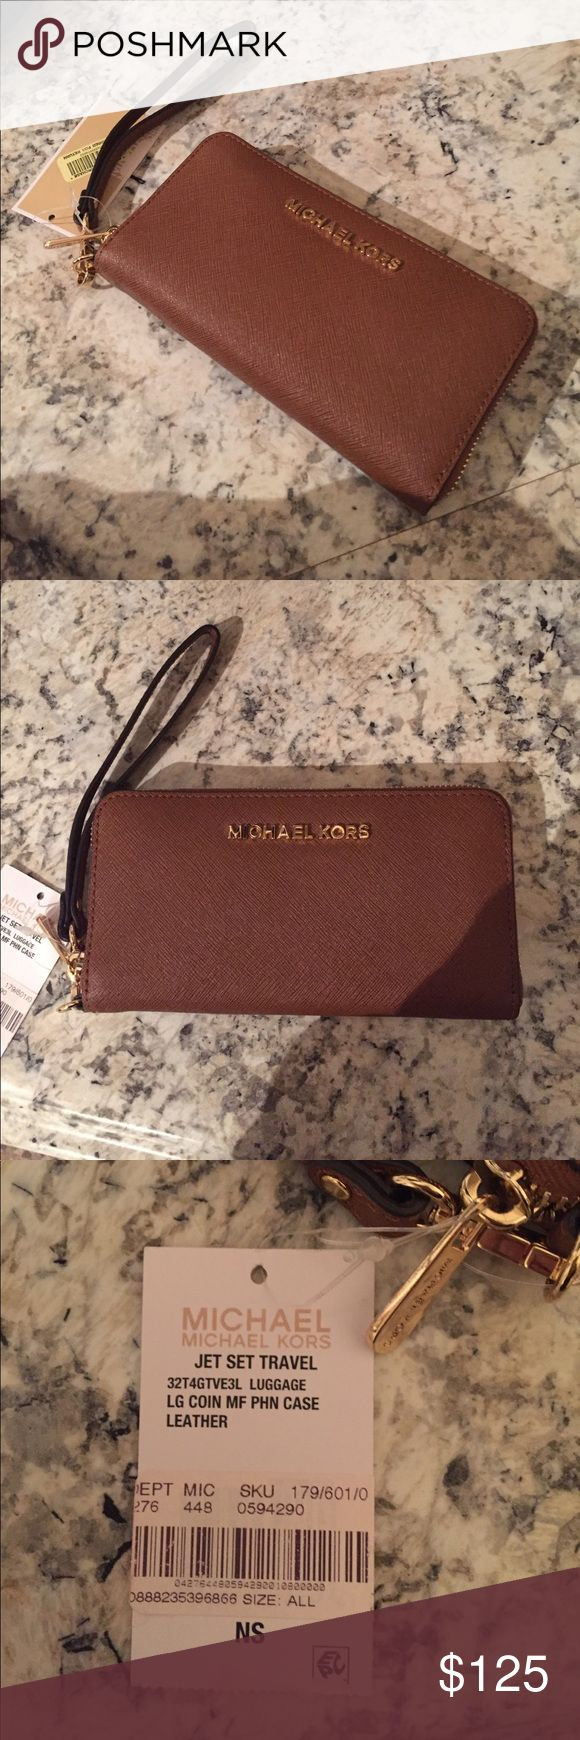 NWT Michael Kors Wristlet NWT never used Michael Kors wristlet. Part of the Jet Set Travel collection. Spaces for cards, coins, cash, etc. Color: Acorn. Gold zipper. No flaws or stains. Bags Clutches & Wristlets